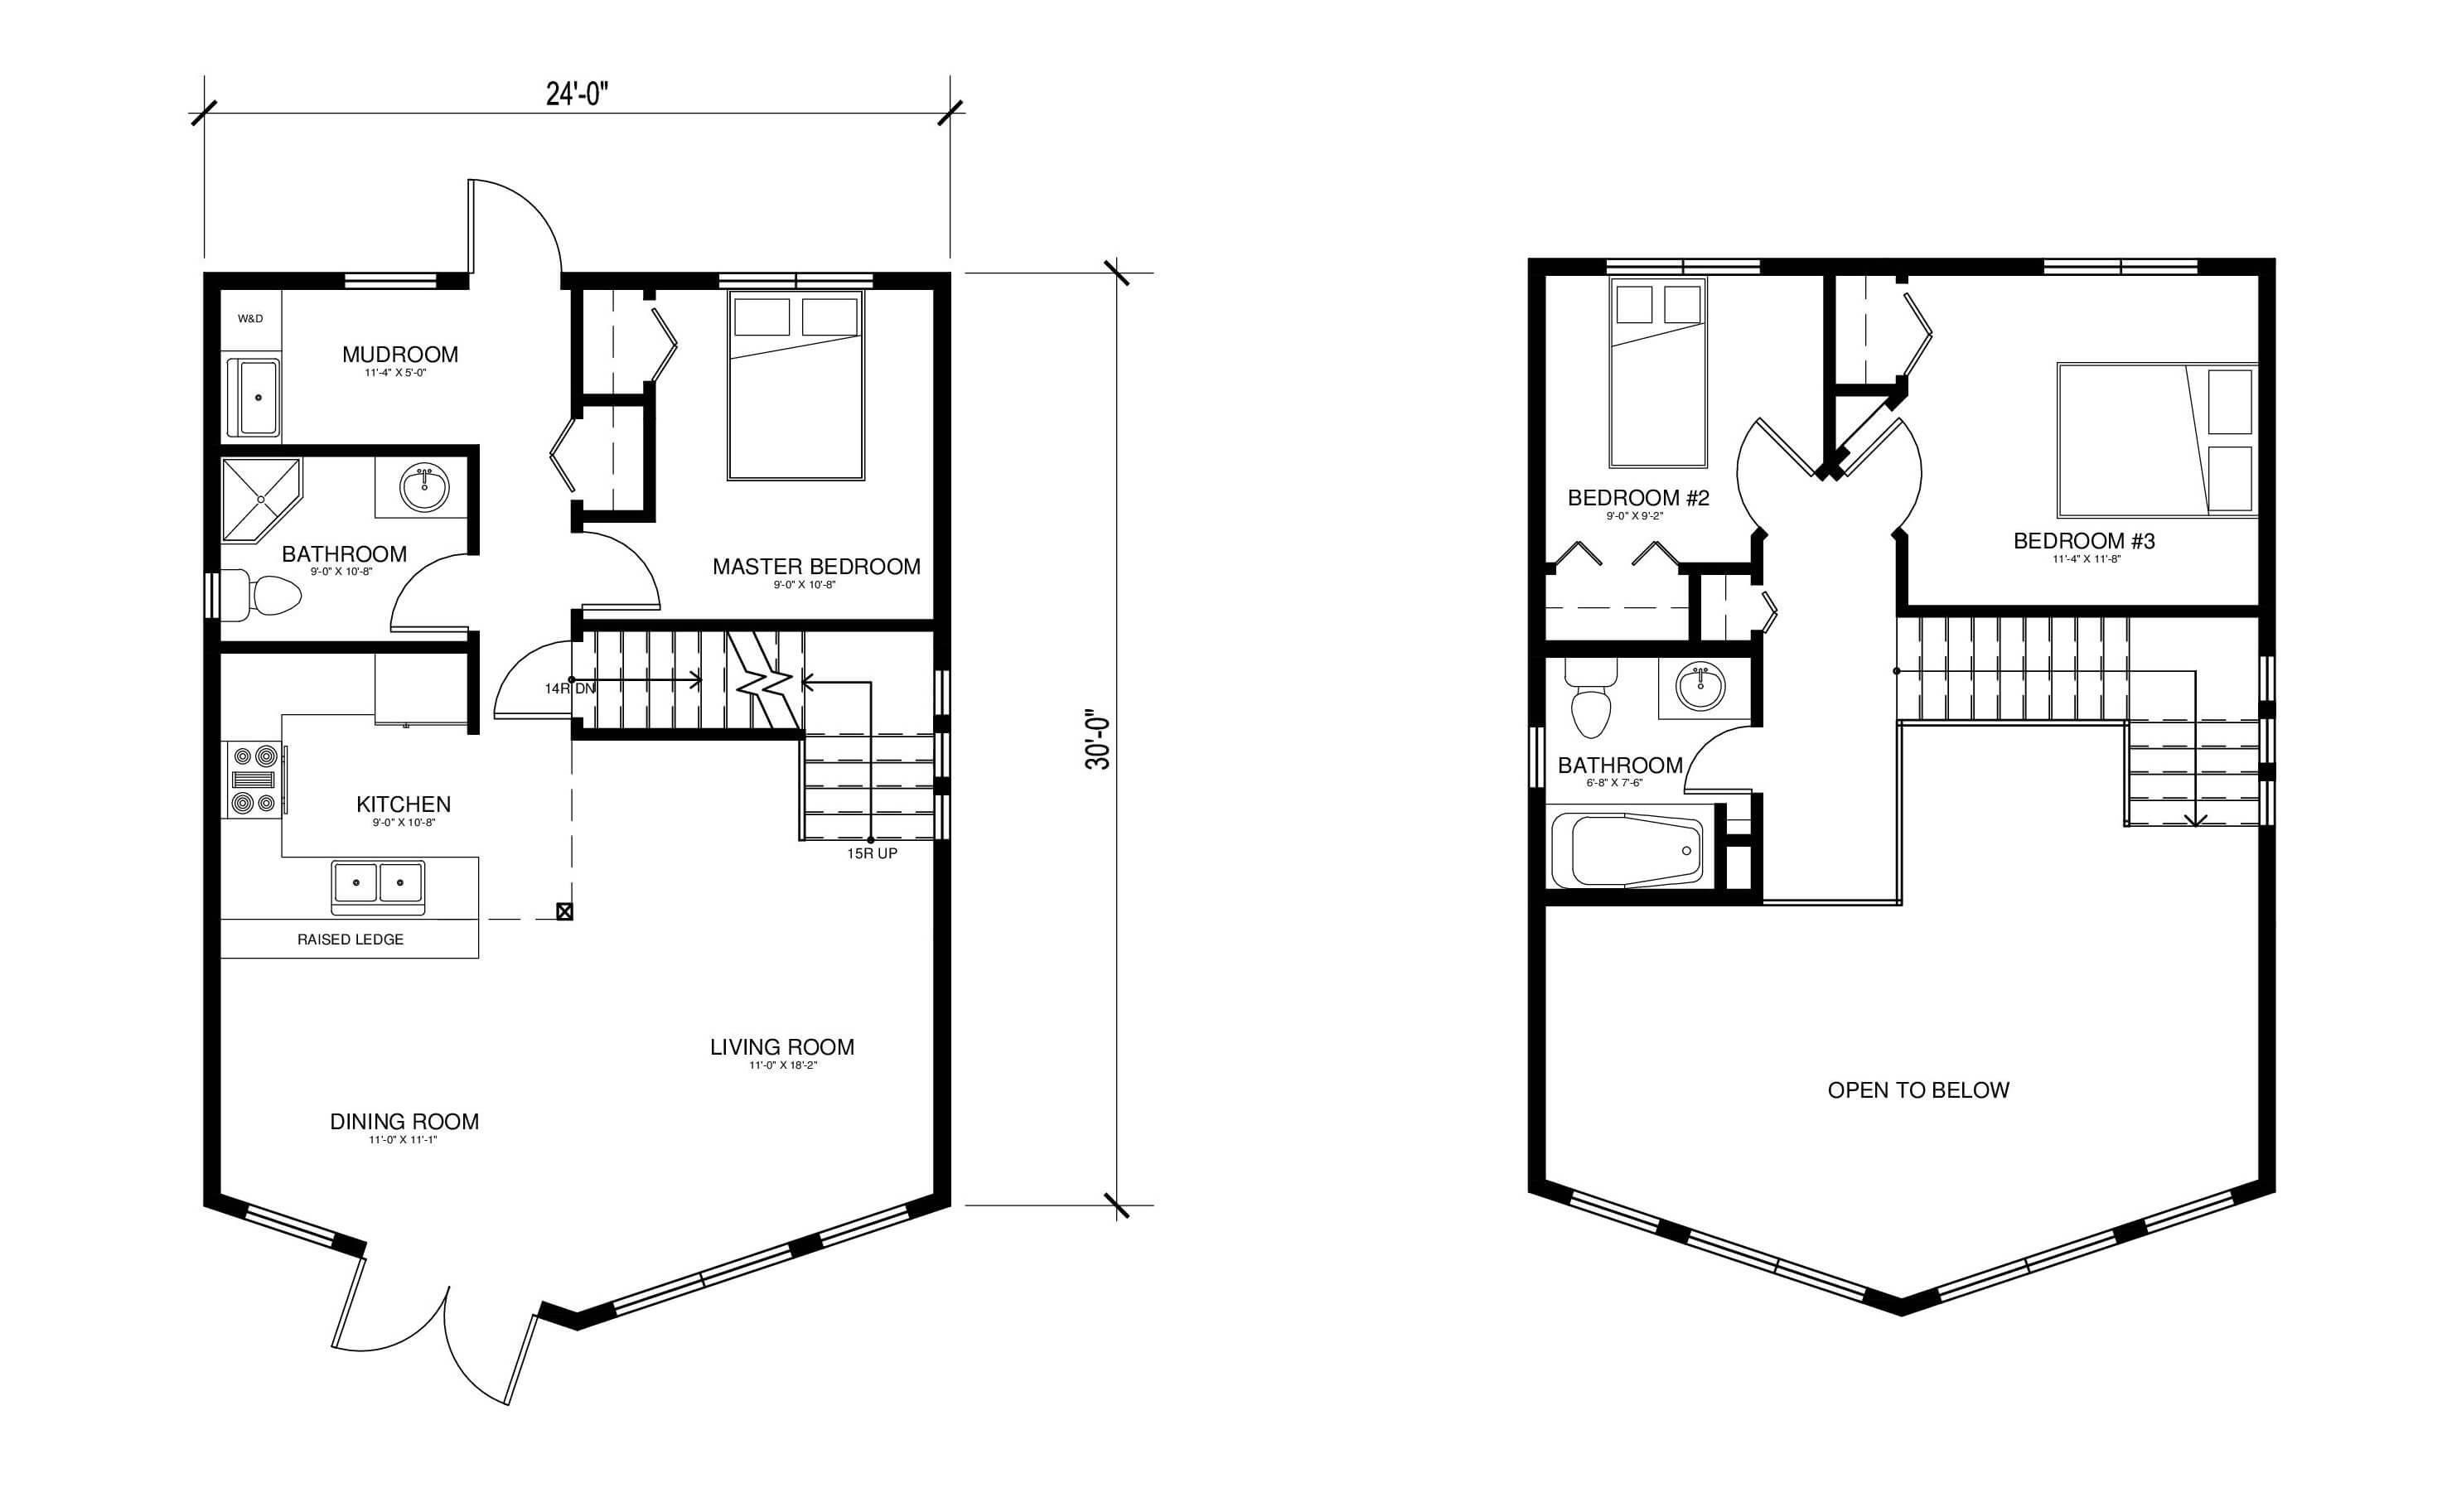 House Plans Cost To Build Estimates Images Outdoor